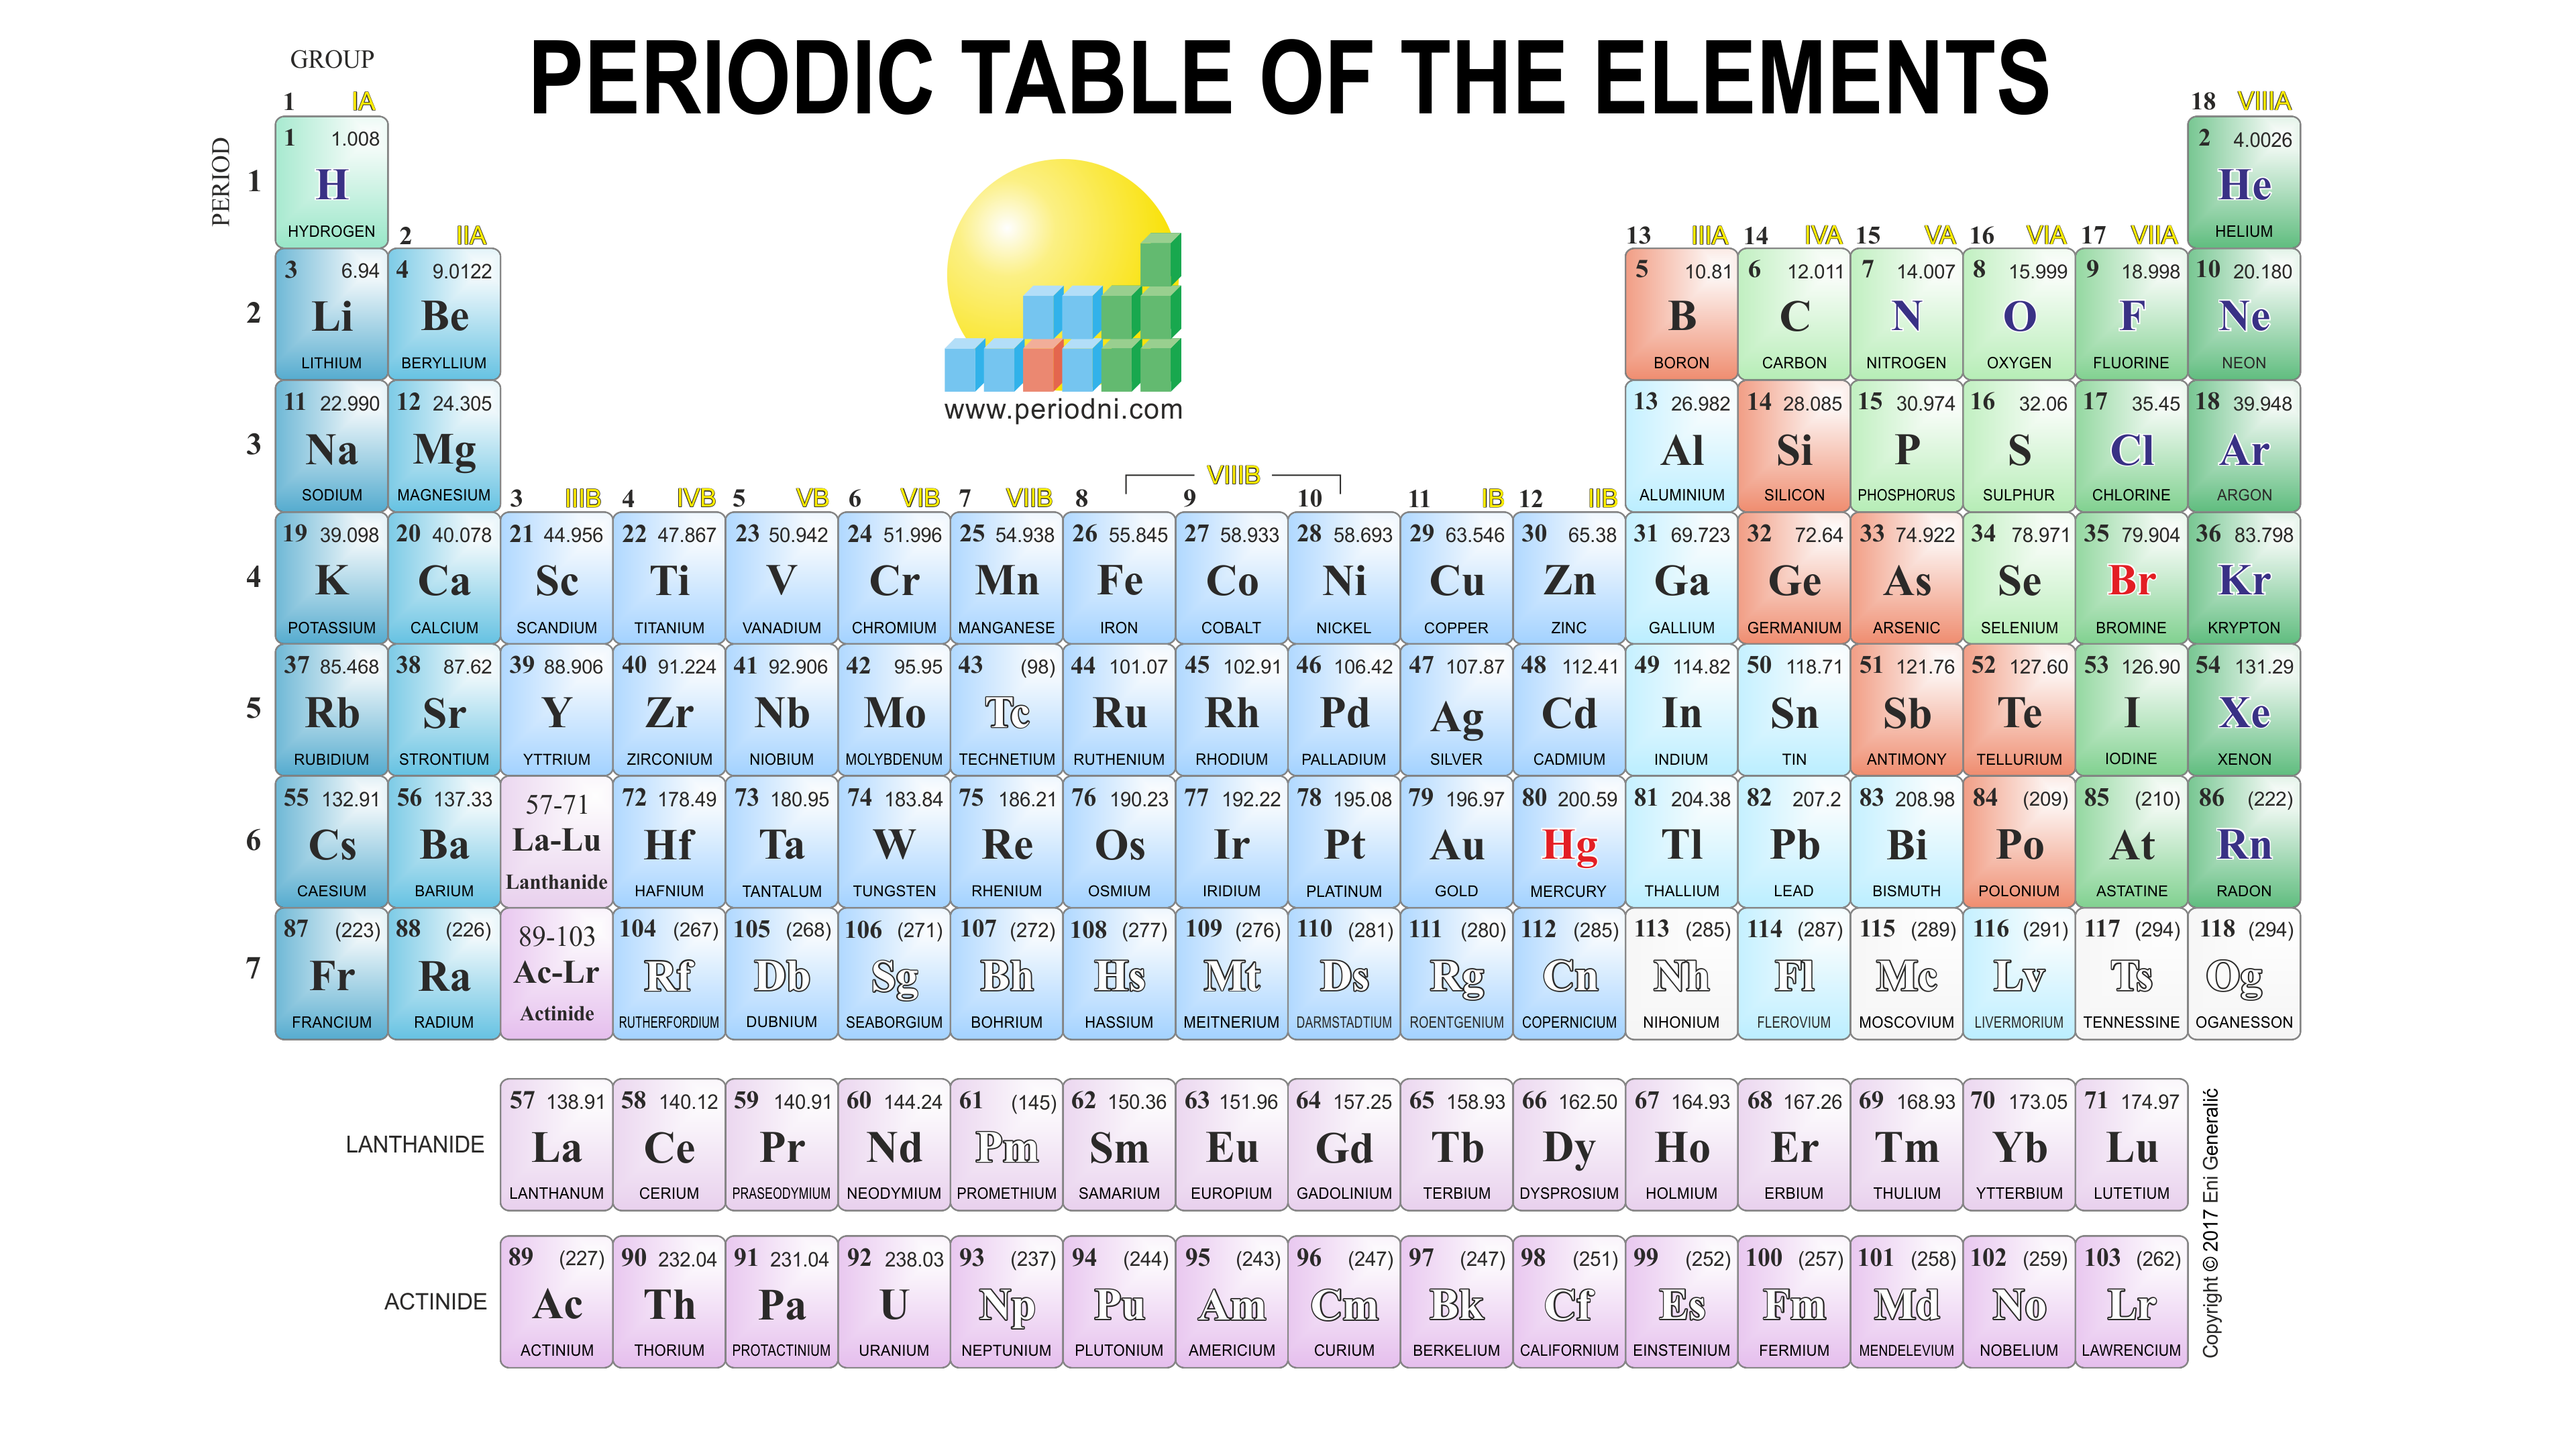 Direct download link: https://www.periodni.com/gallery/periodic_table-4k-3840x2160-light_background.png